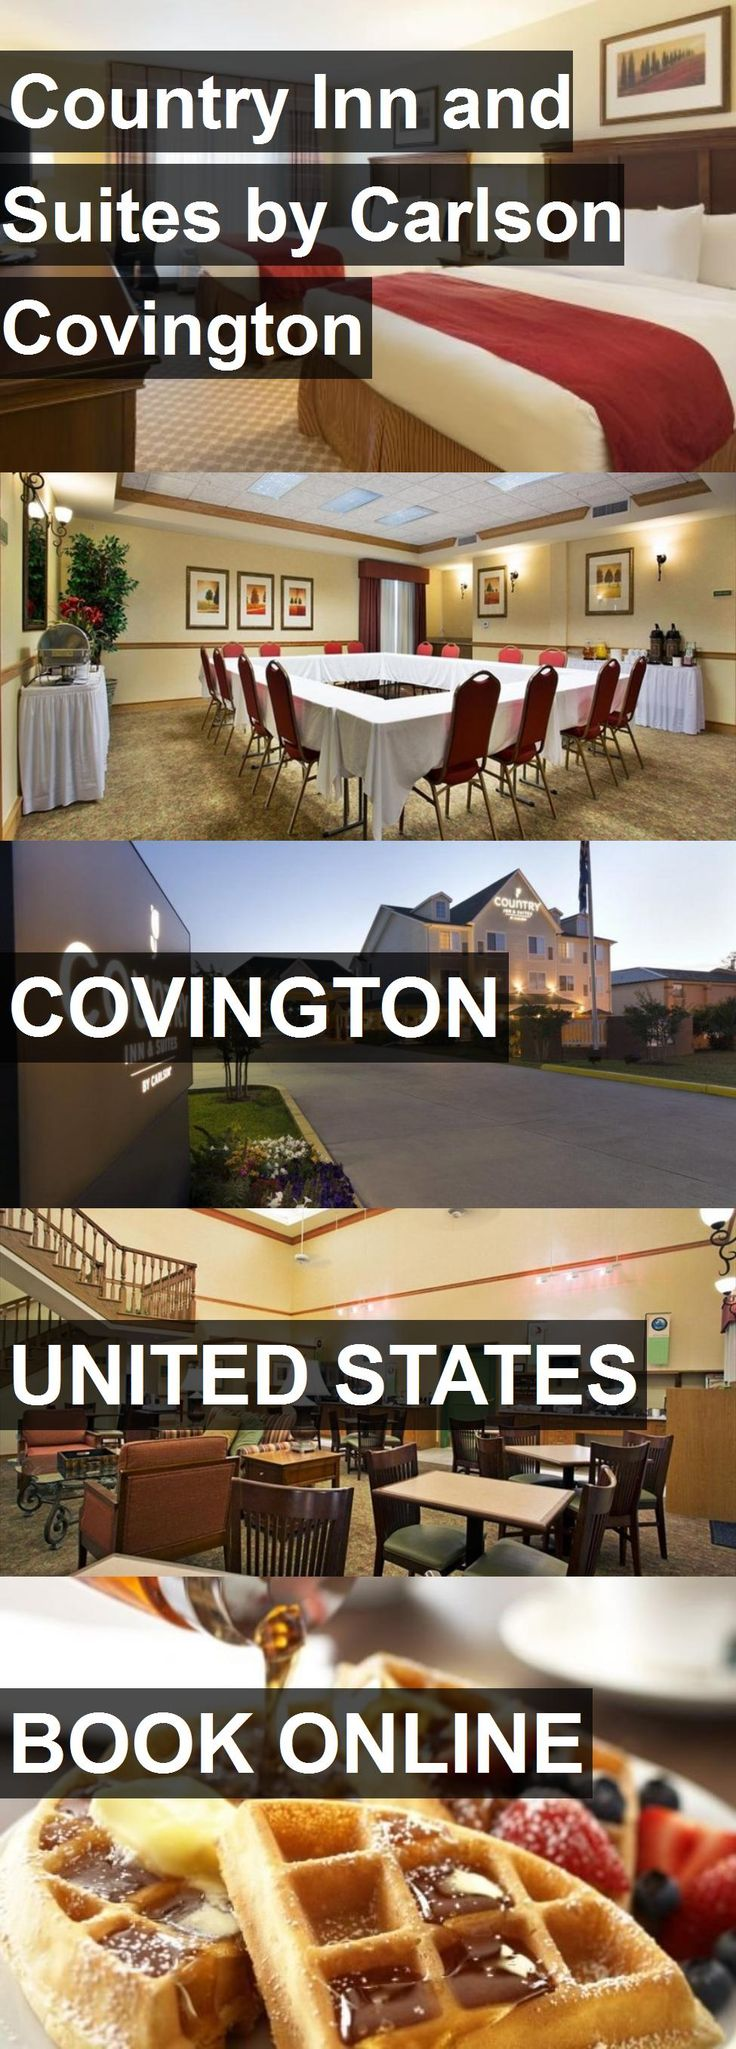 Hotel Country Inn and Suites by Carlson Covington in Covington, United States. For more information, photos, reviews and best prices please follow the link. #UnitedStates #Covington #travel #vacation #hotel